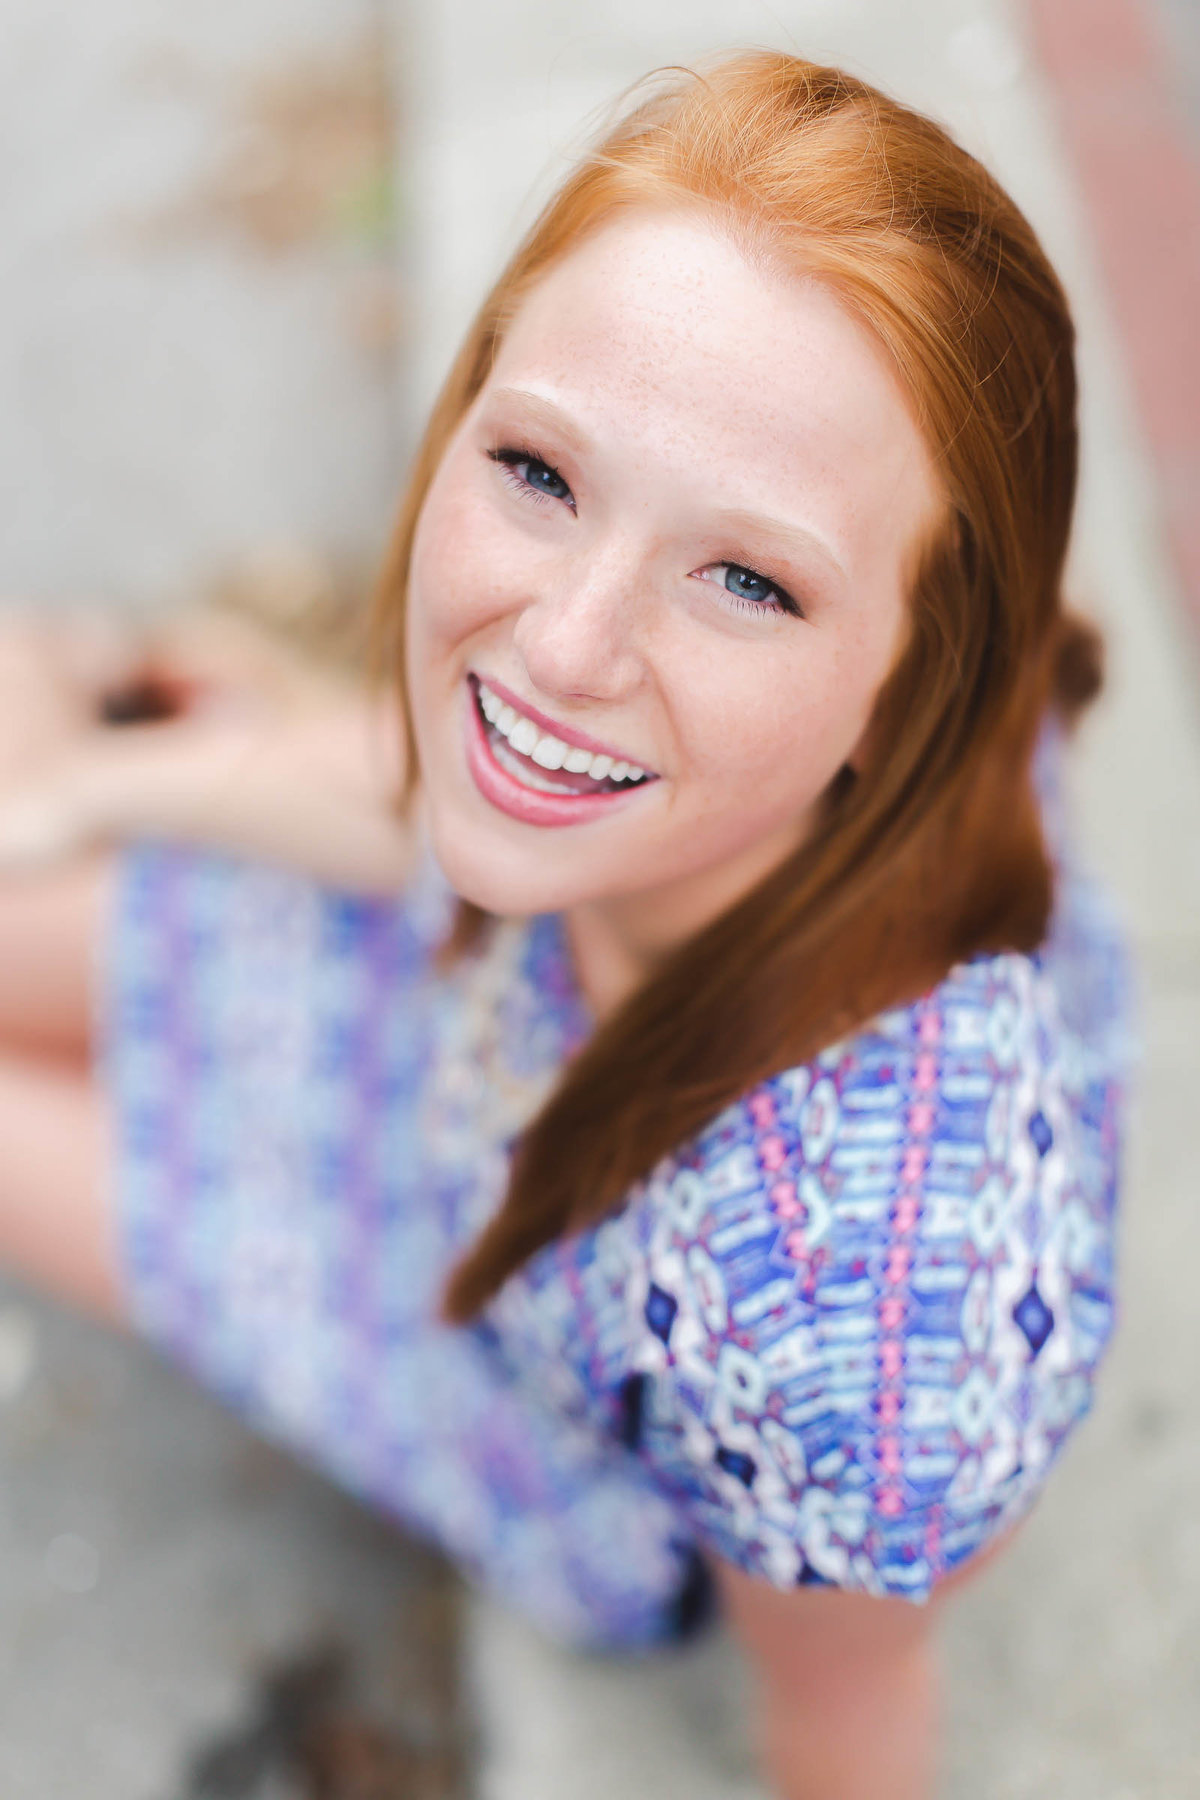 Taylors senior session  (4 of 6)